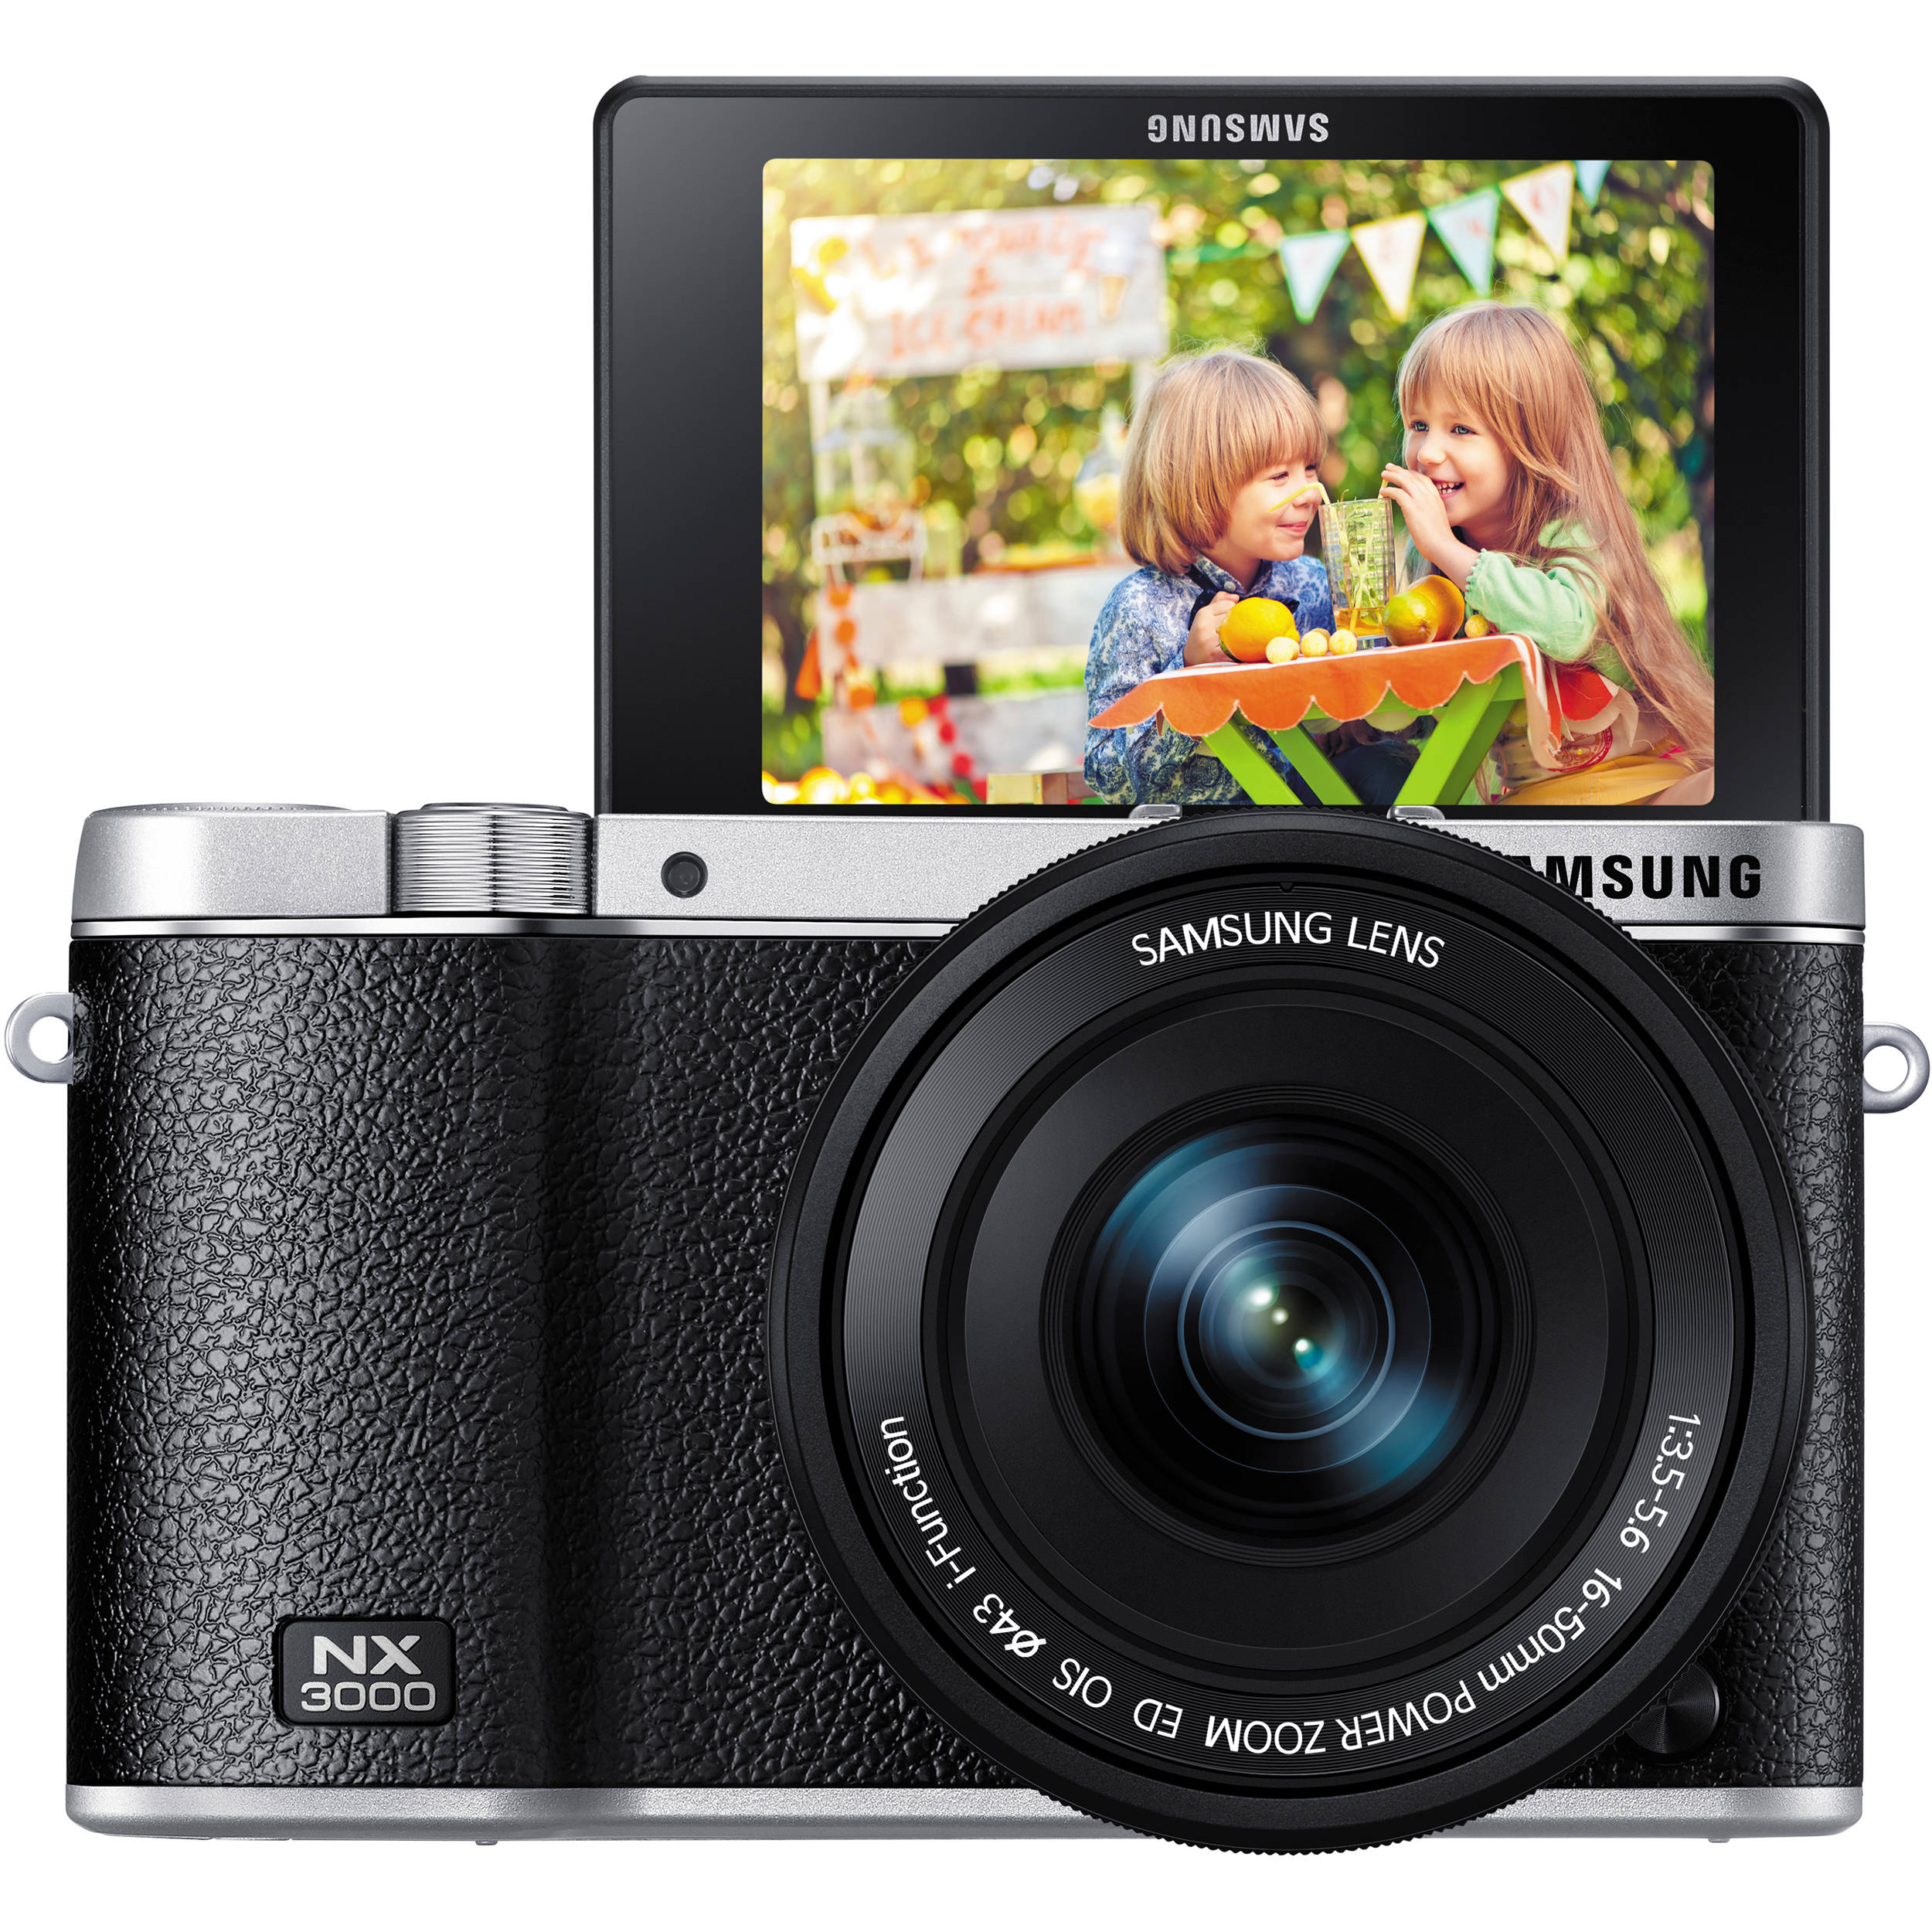 Samsung nx3000 review and specs.